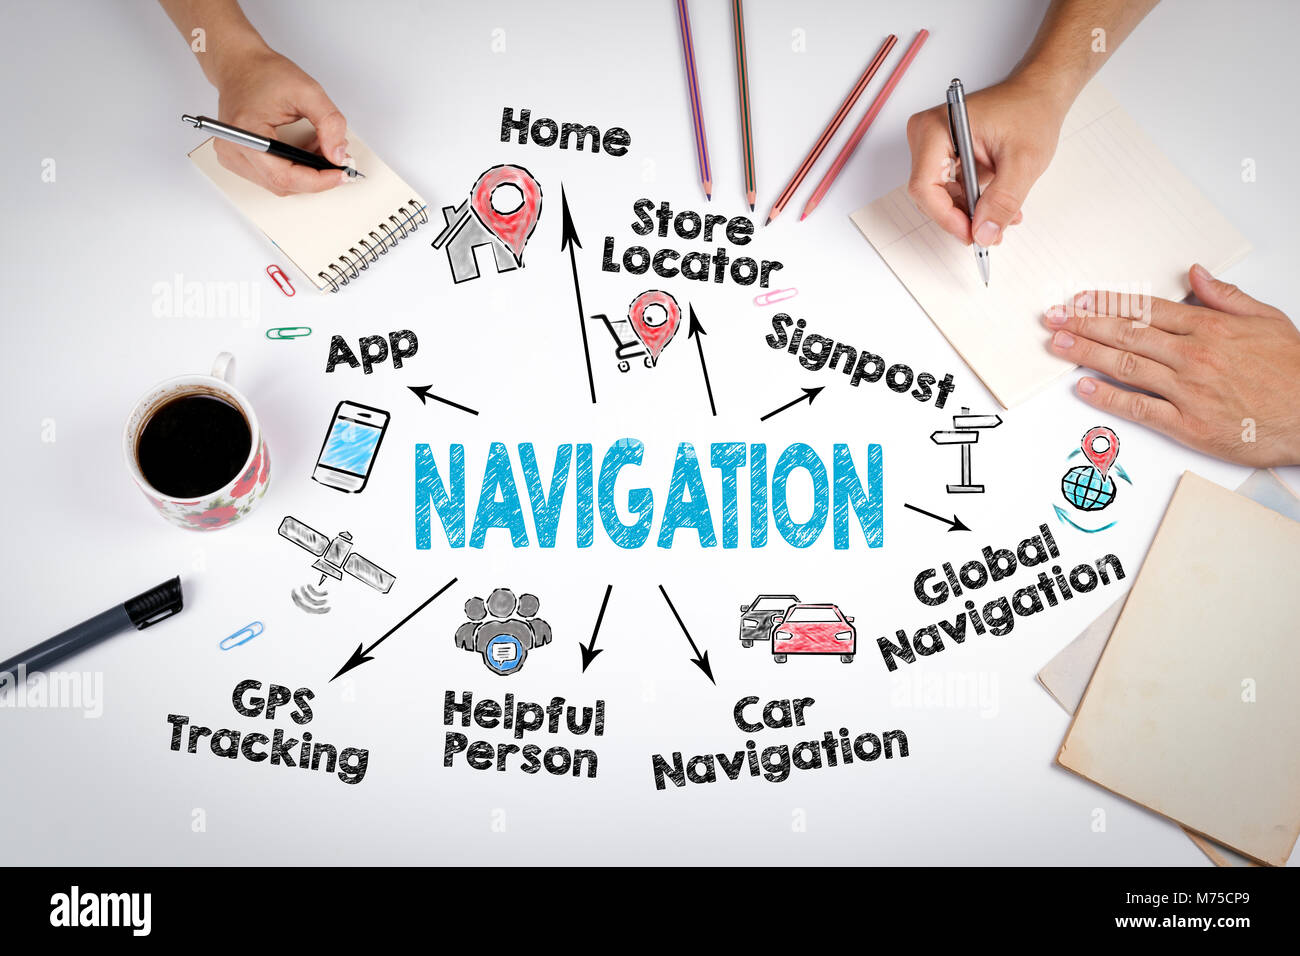 Navigation Concept. Chart with keywords and icons - Stock Image